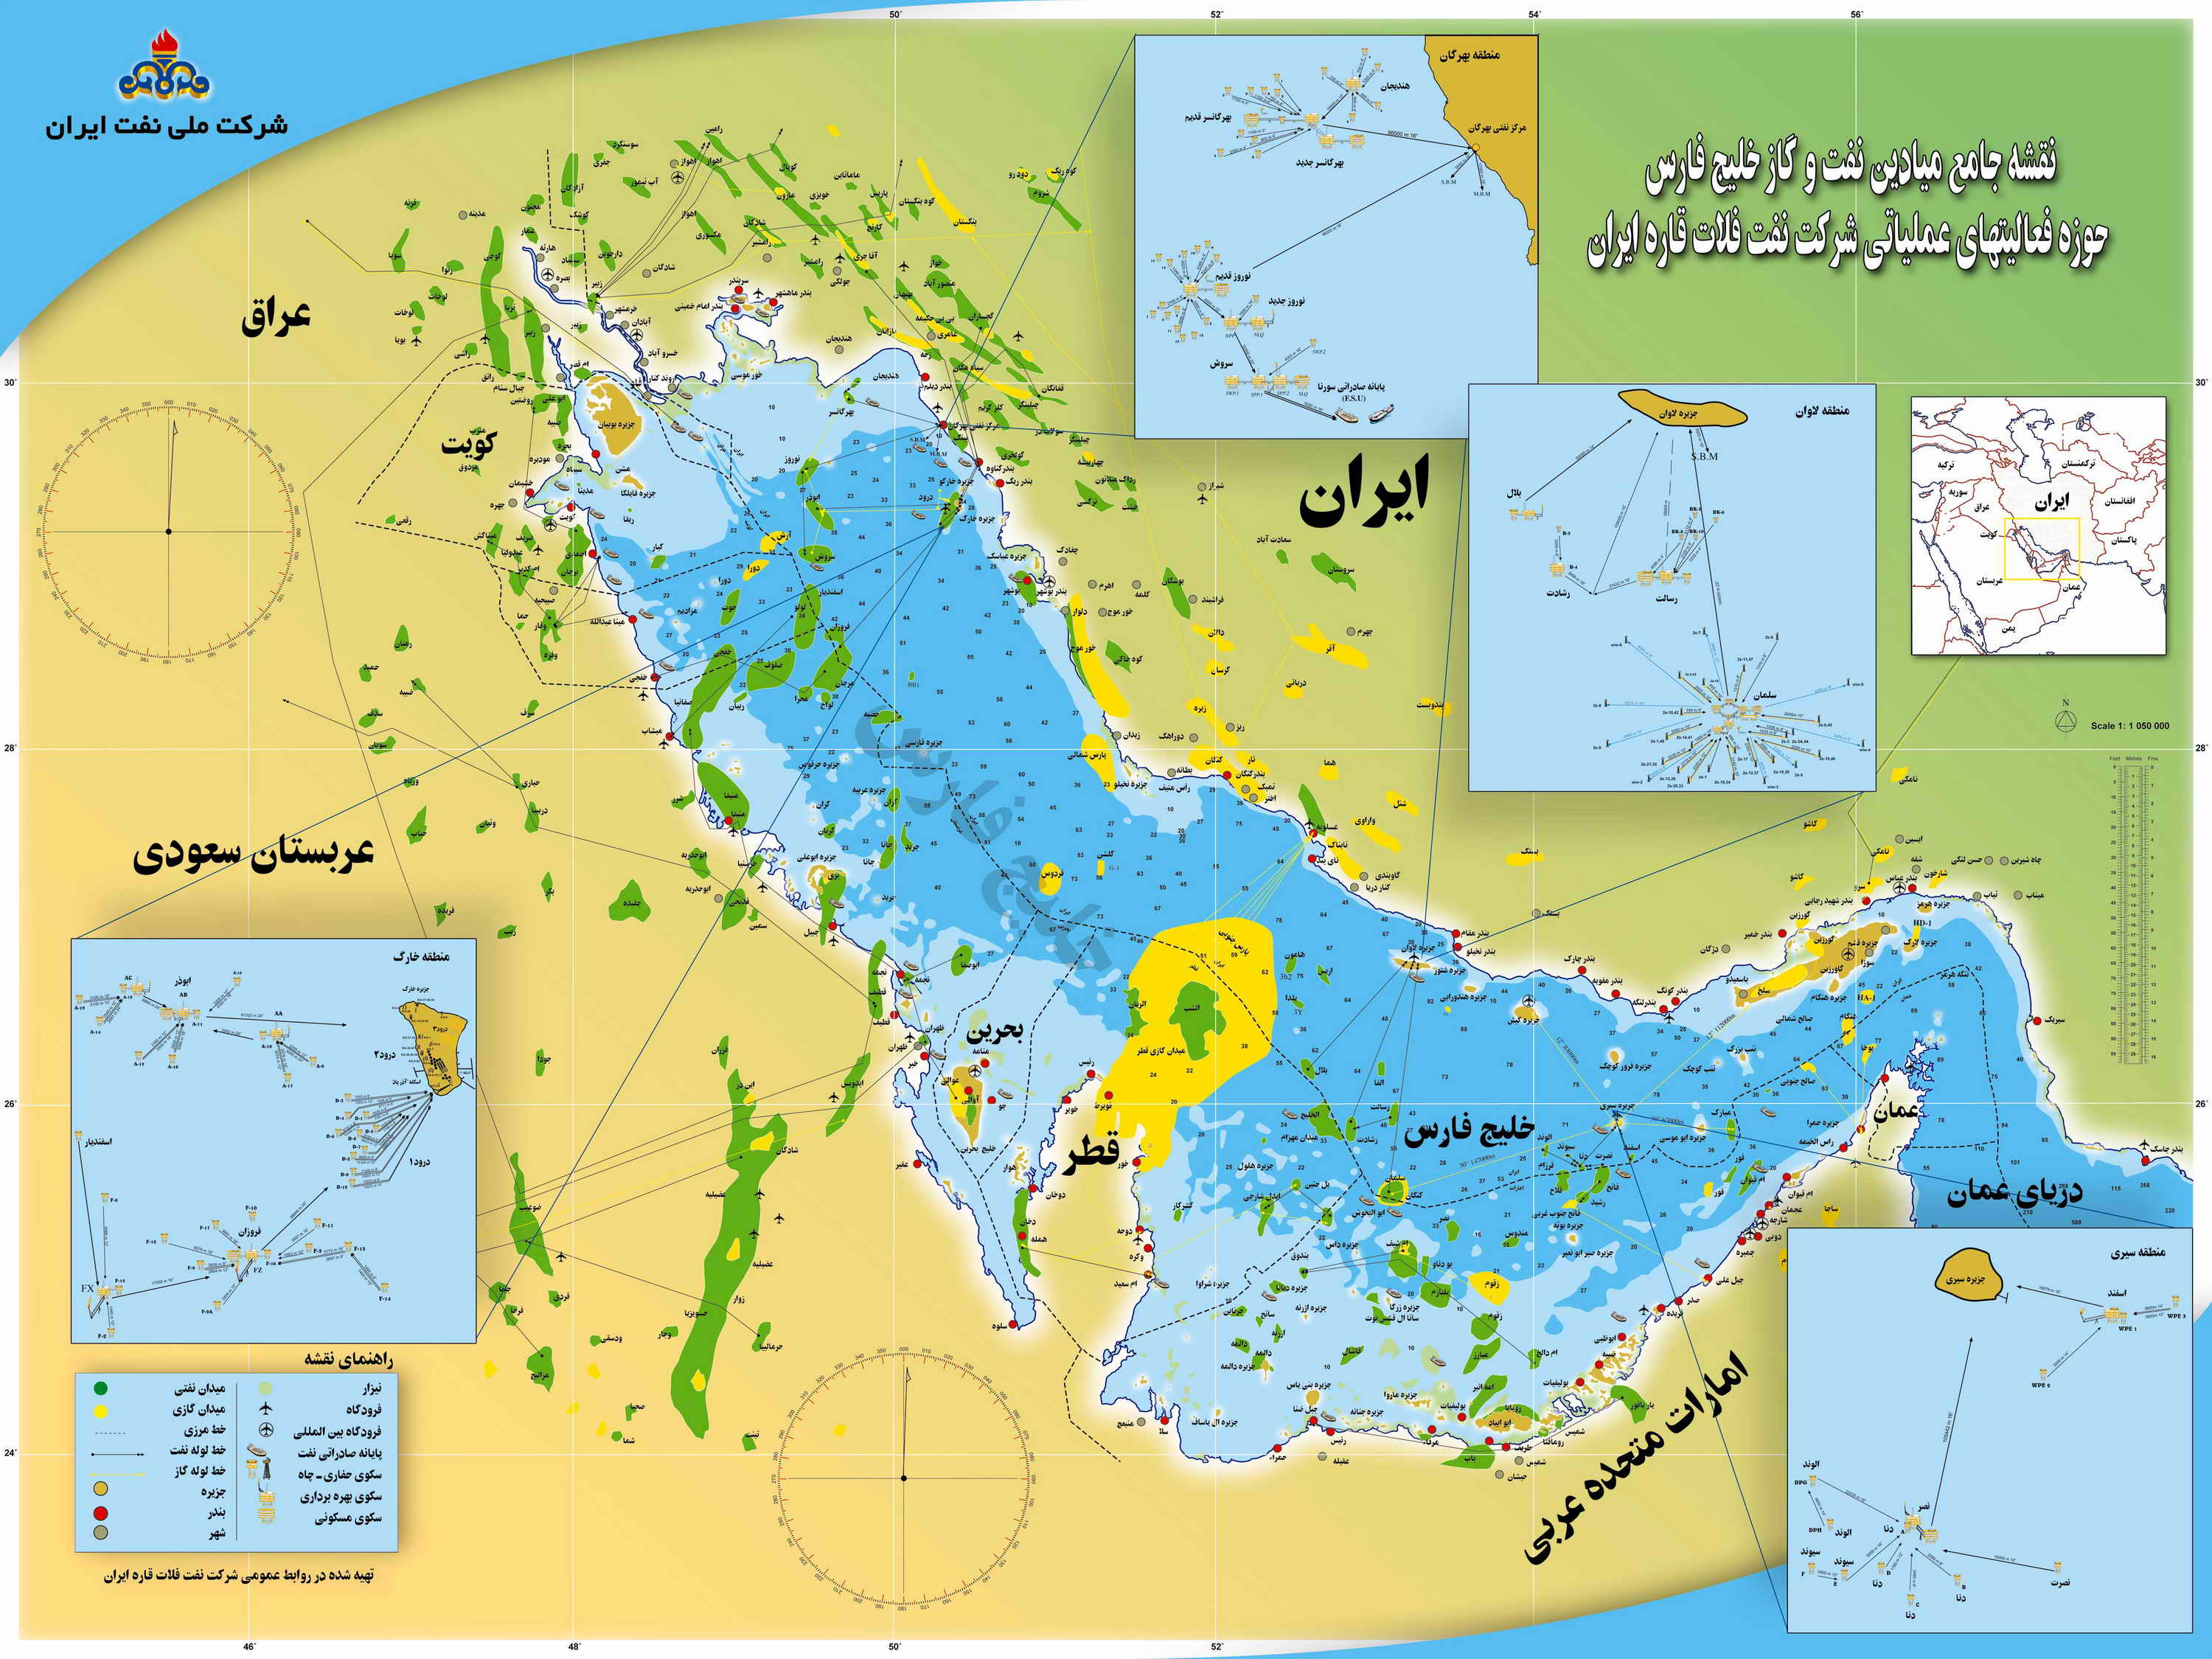 Persian Gulf Oil & Gas Maps|persian gulf Oil and Gas Maps